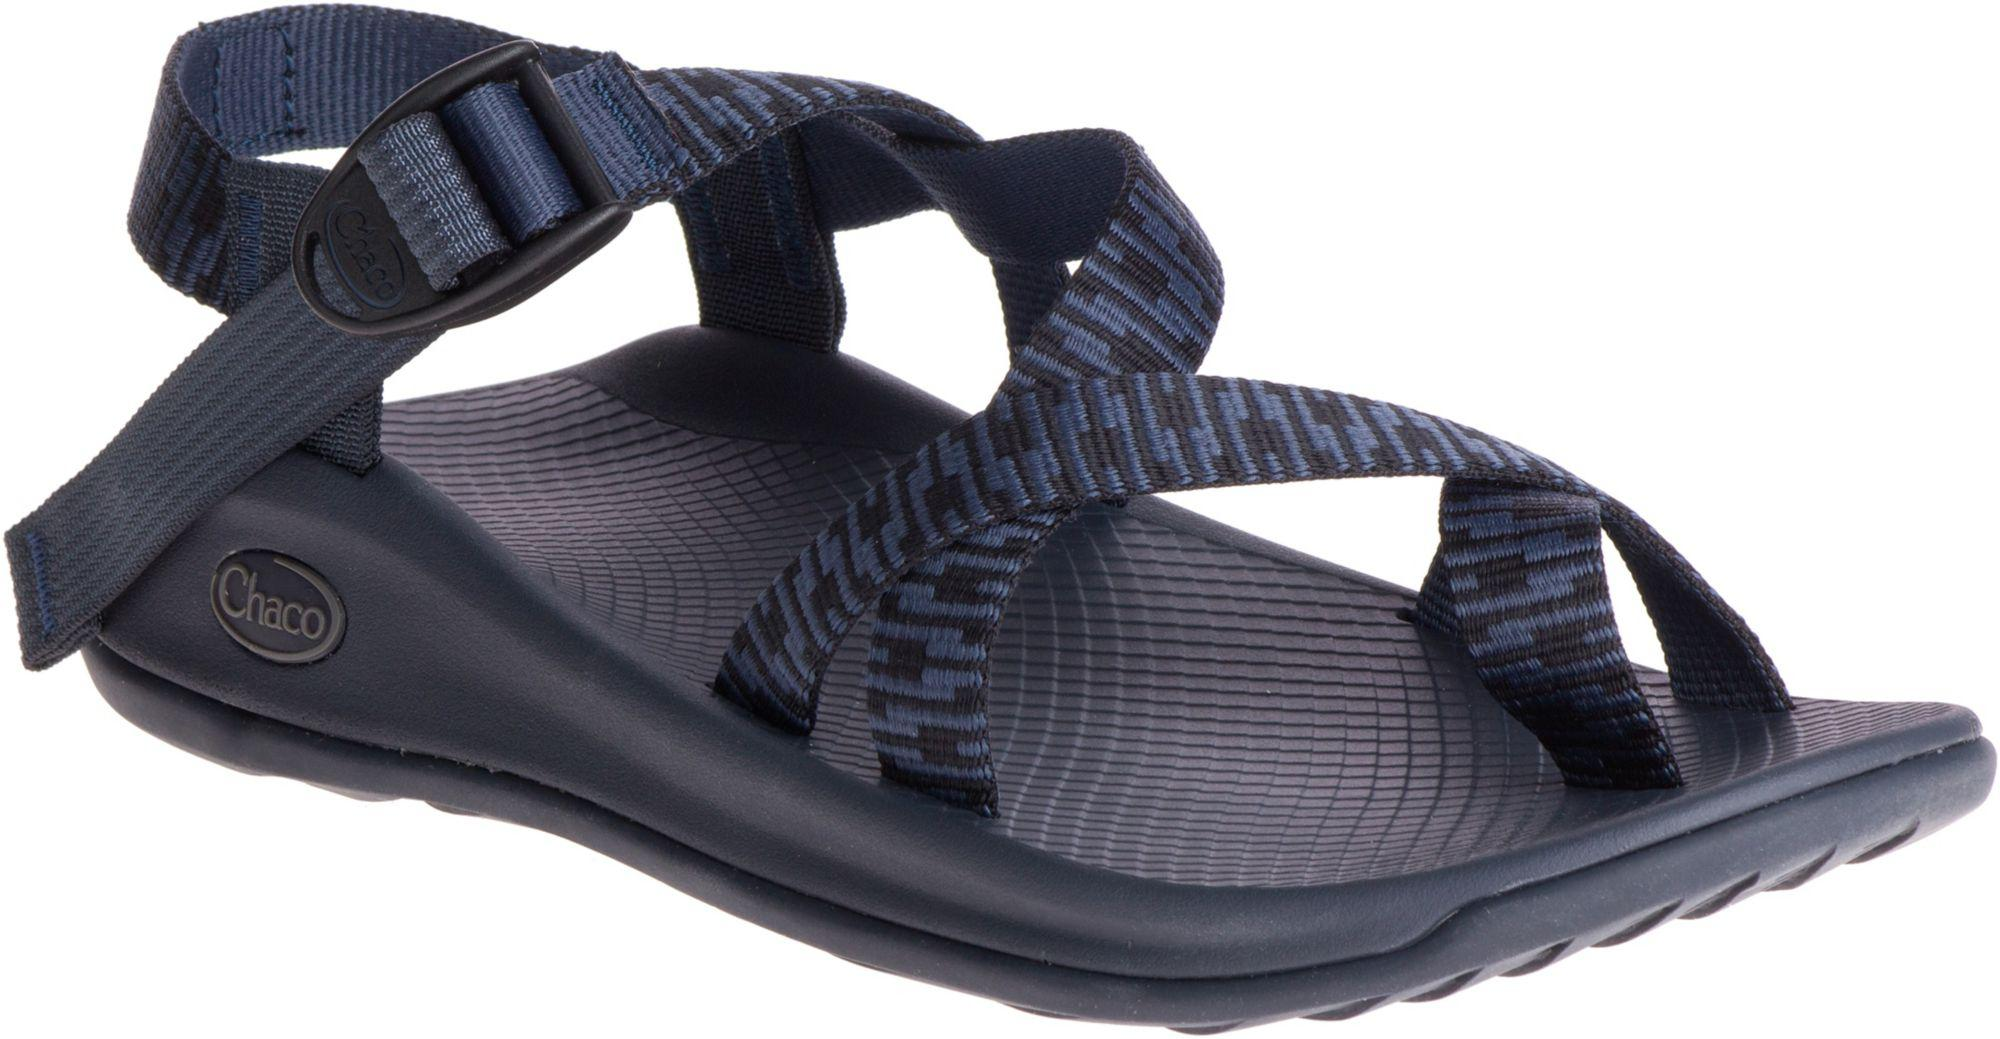 b97566b14a71 Chaco Z/eddy X2 Sandals in Blue - Lyst